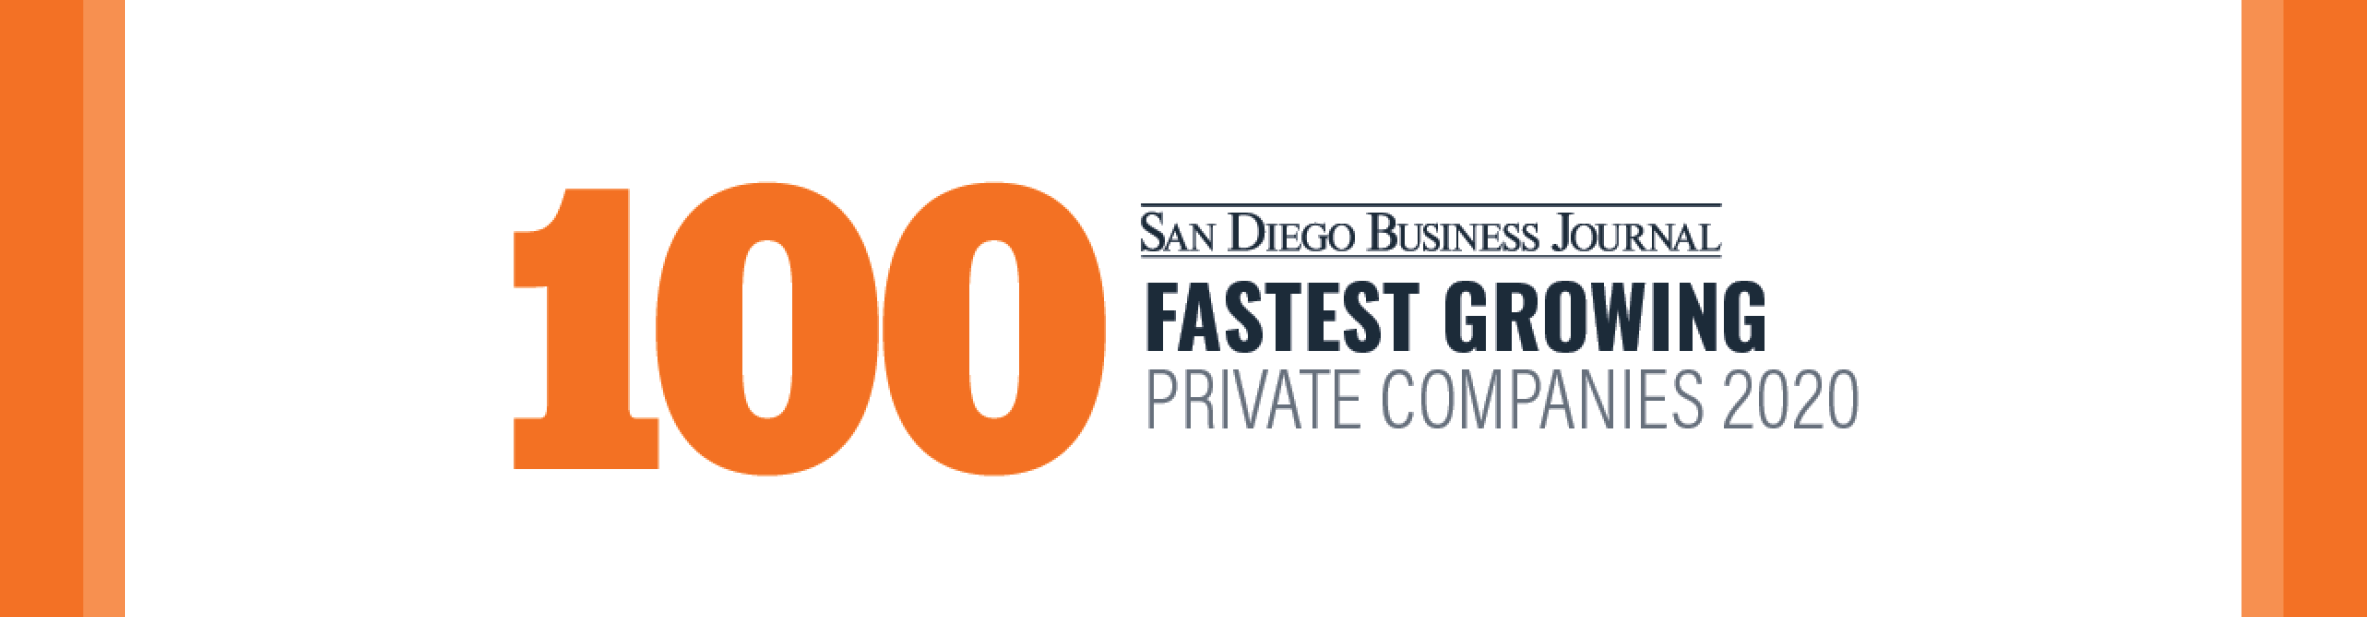 San Diego Business Journal Fastest Growing